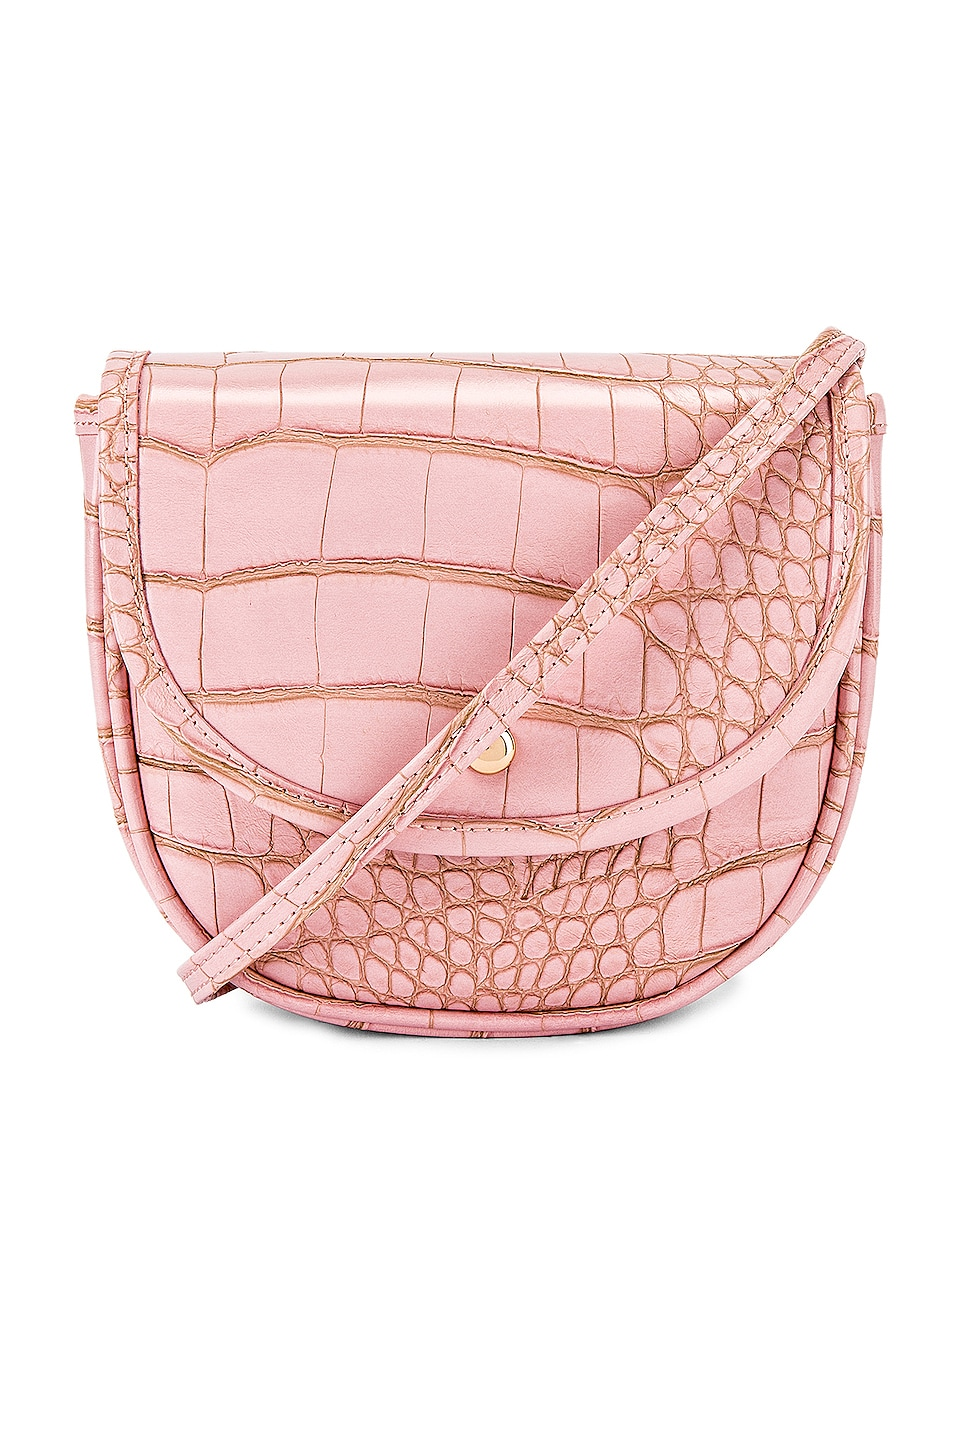 L'Academie Tavi Mini Cross Body in Blush